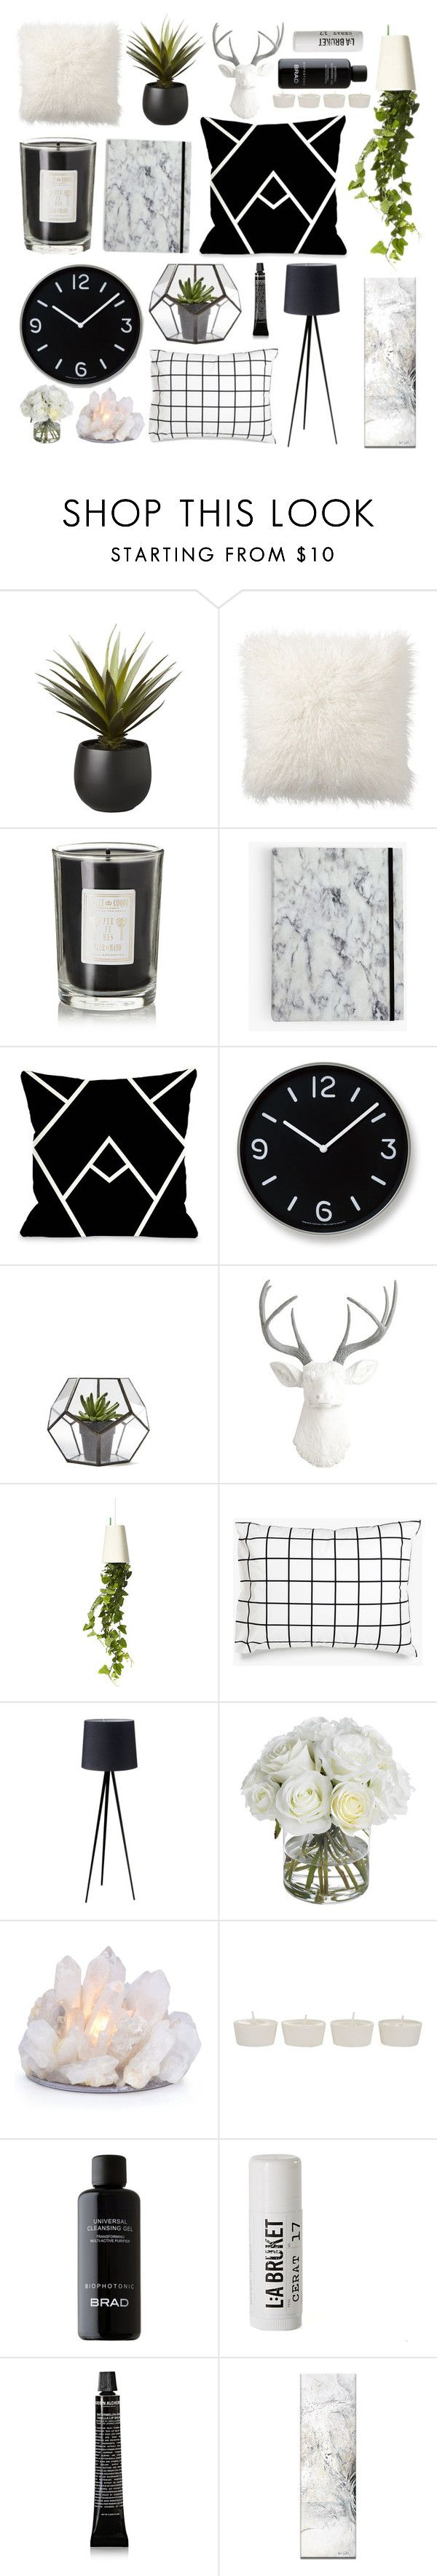 """""""Untitled #5"""" by blakrope on Polyvore featuring interior, interiors, interior design, home, home decor, interior decorating, CB2, Pottery Barn, Coqui Coqui and Lemnos"""